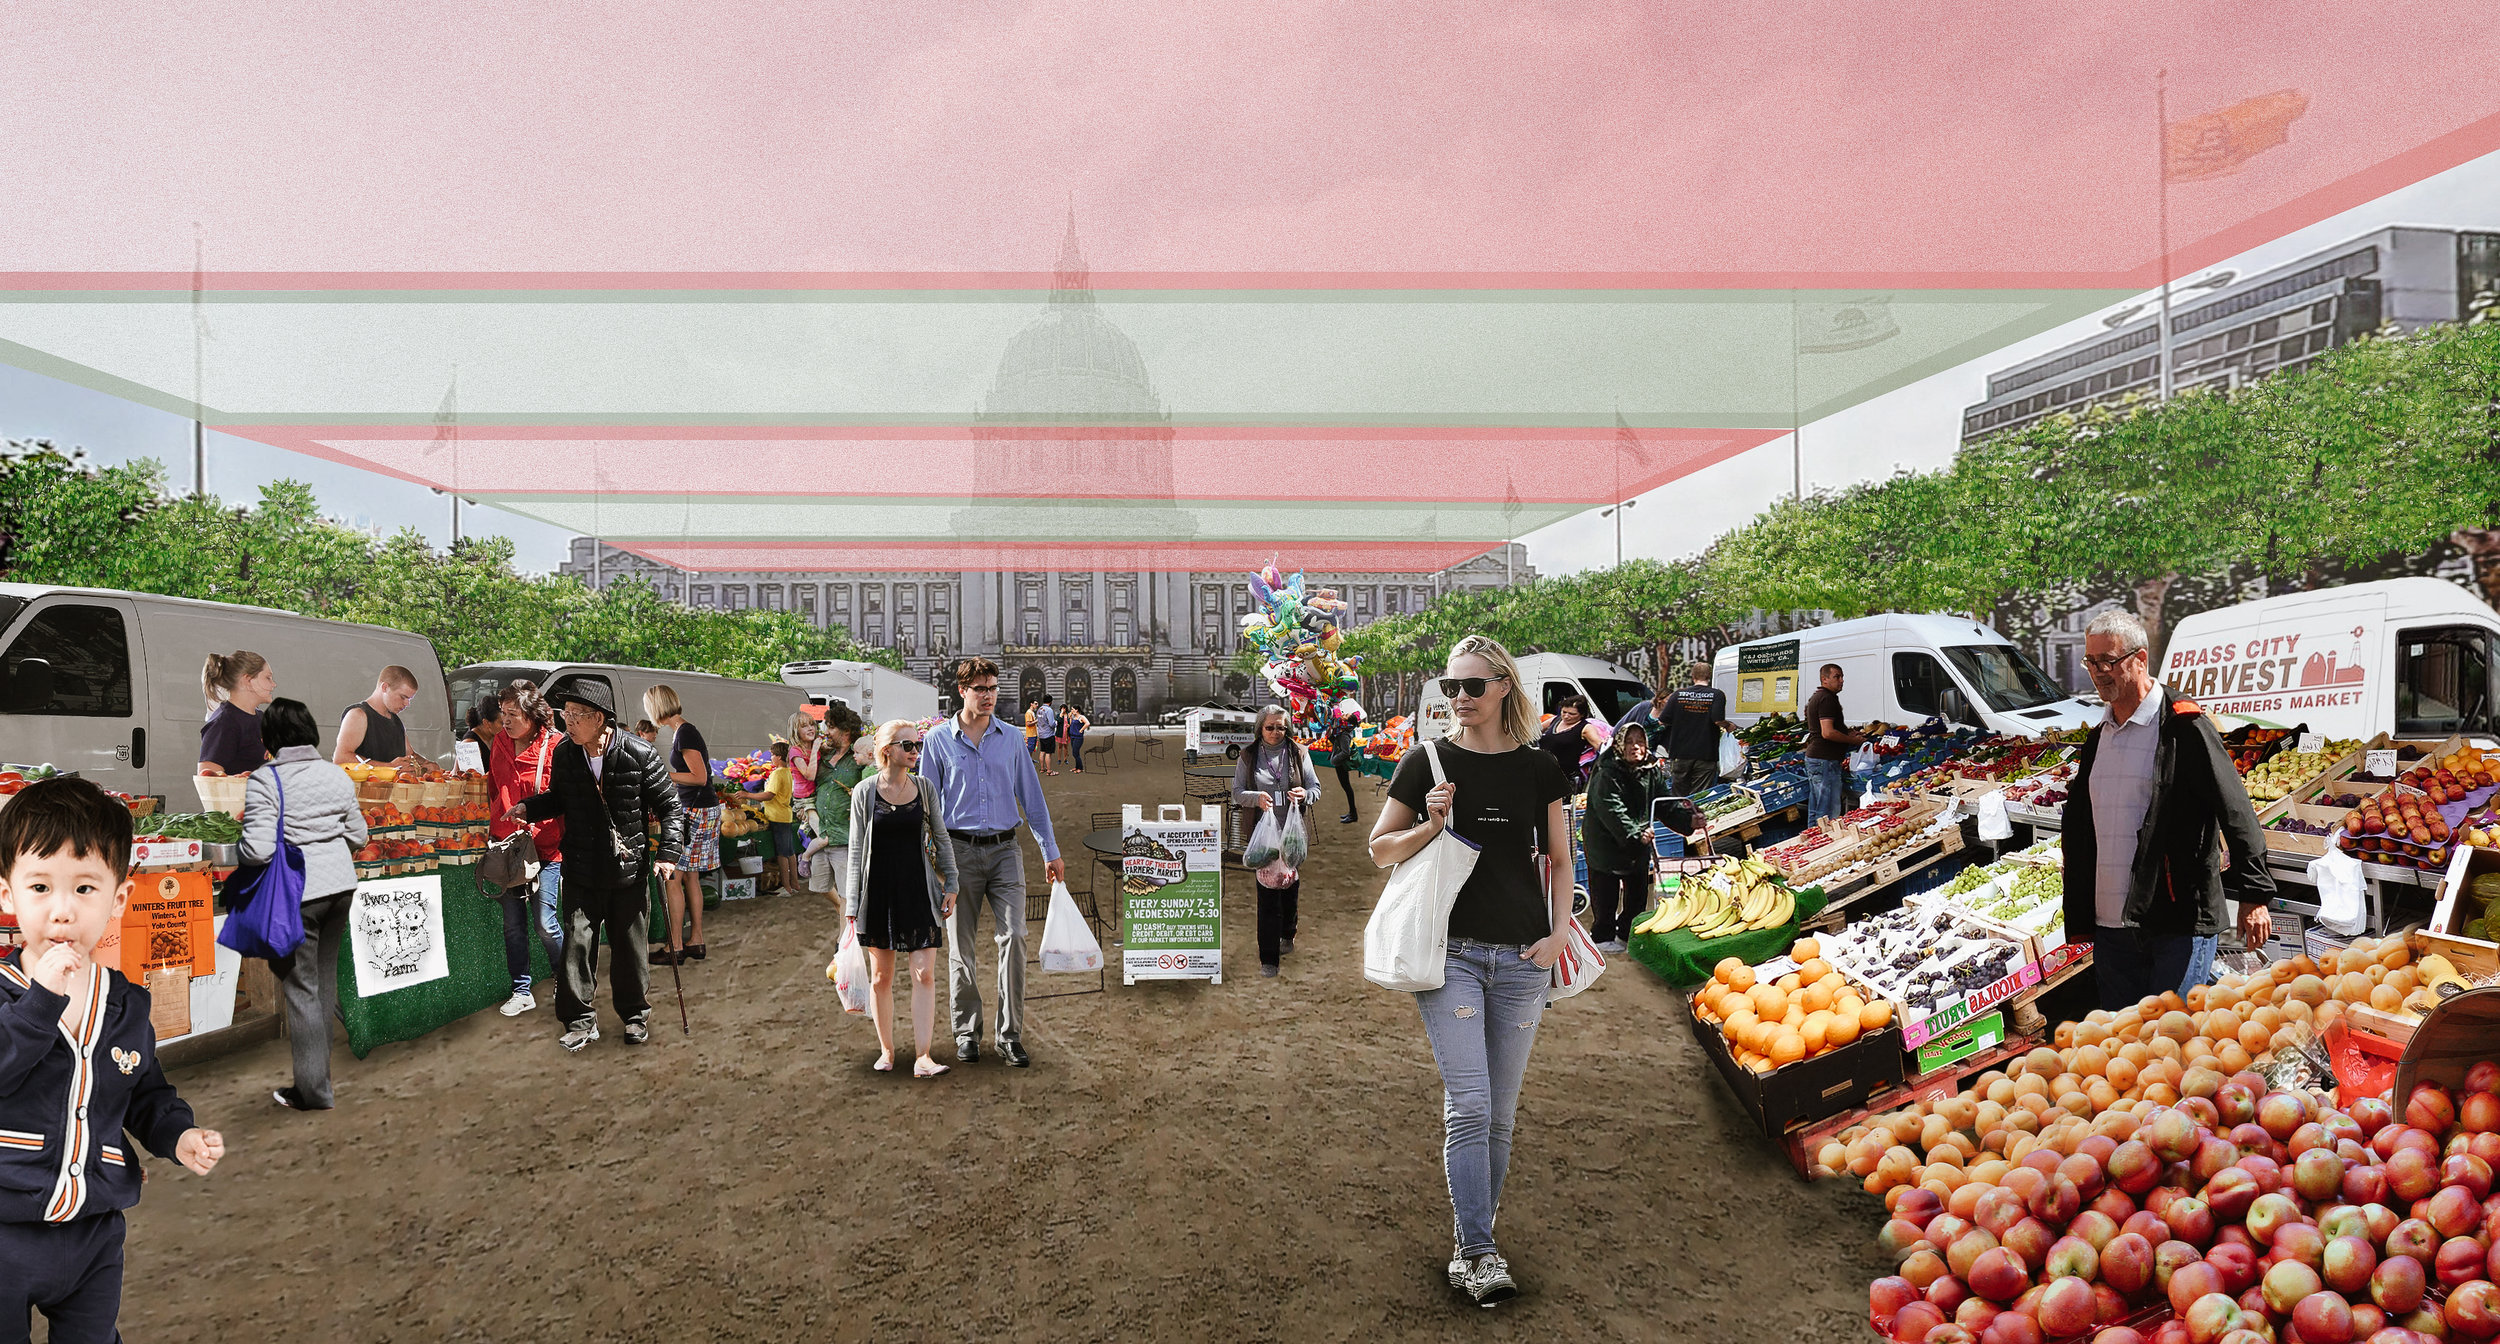 A rendering of the Civic Center Plaza with the temporarily relocated farmer's market, under the cover of a temporary shade canopy.